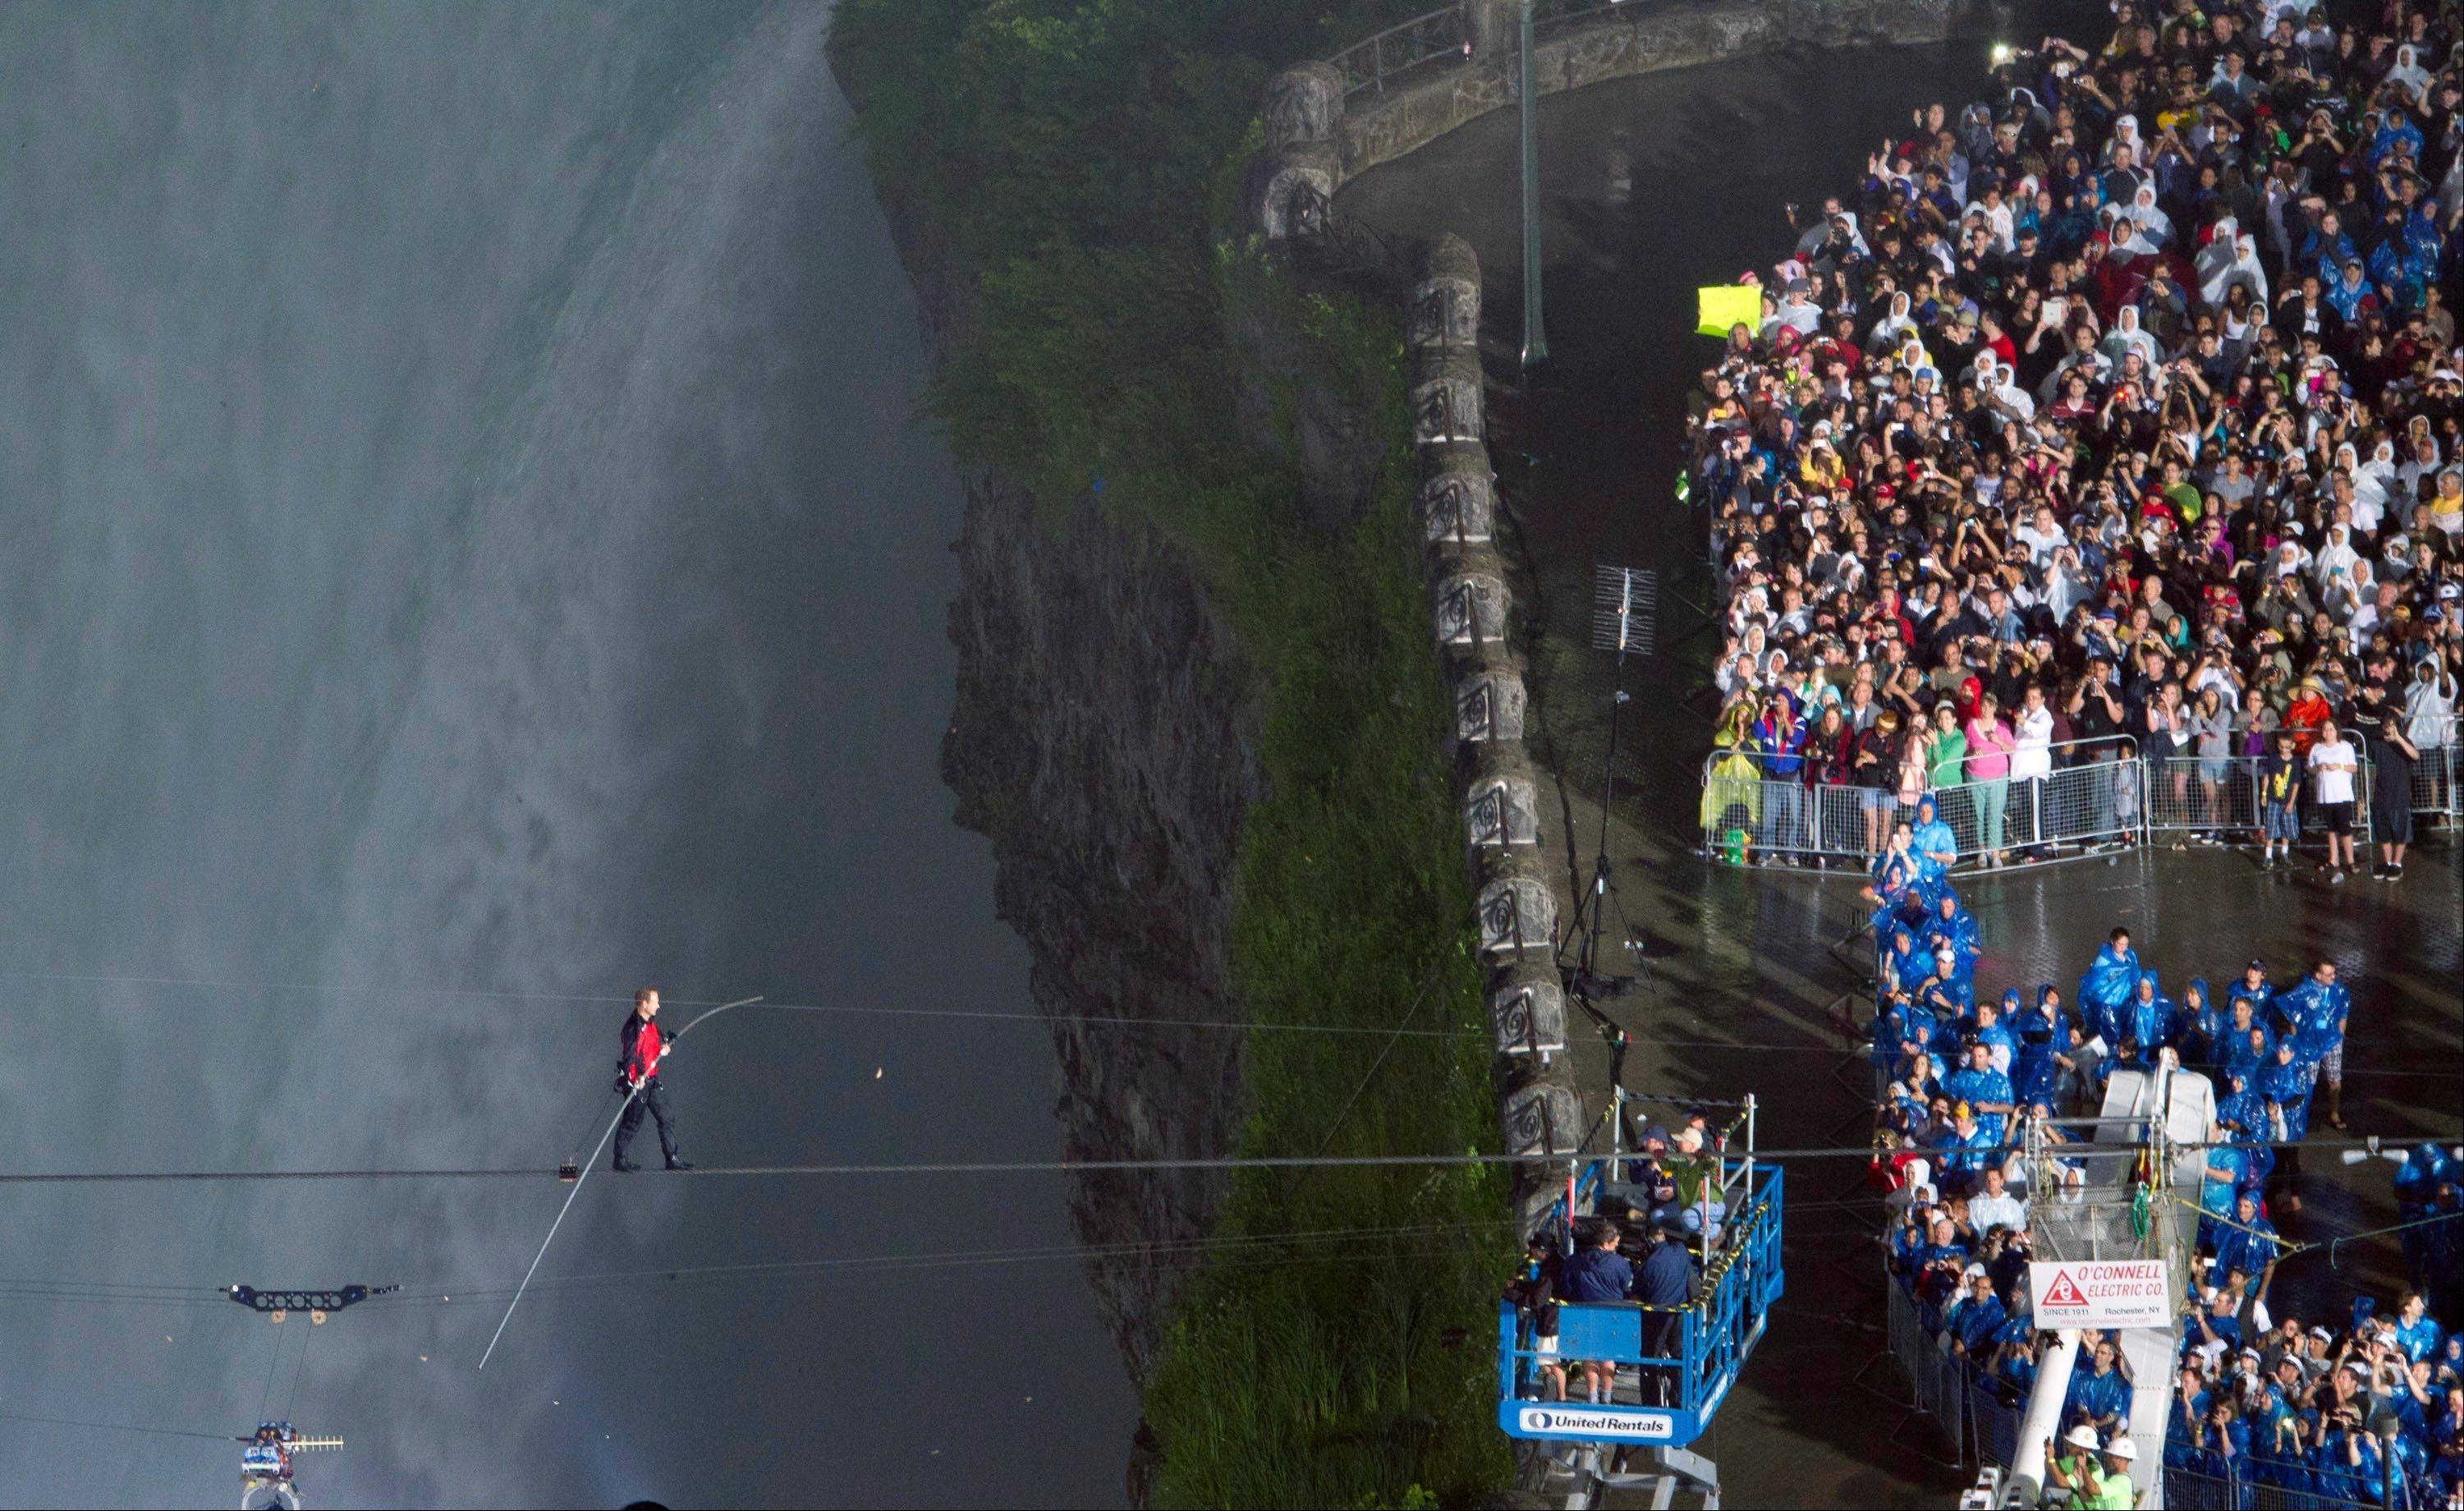 Nik Wallenda completes his walk over Niagara Falls on a tightrope in Niagara Falls, Ont., on Friday, June 15, 2012. Wallenda battled brisk winds and thick mist Friday to make history, becoming the first person to walk across Niagara Falls on a tightrope.